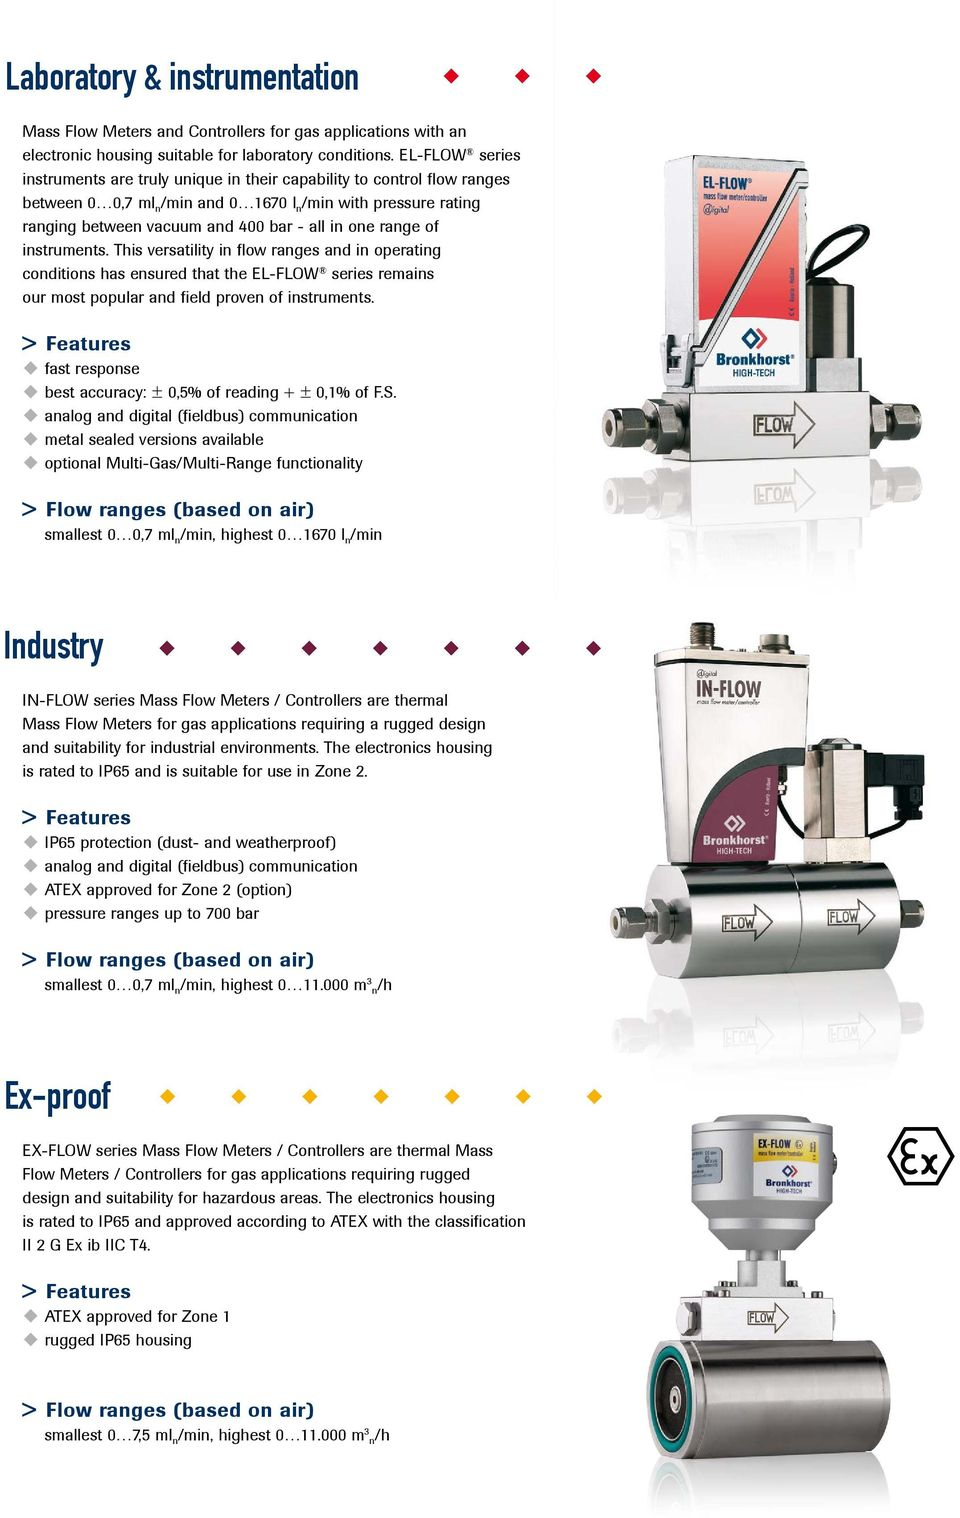 range of instruments. This versatility in flow ranges and in operating conditions has ensured that the EL-FLOW series remains our most popular and field proven of instruments.